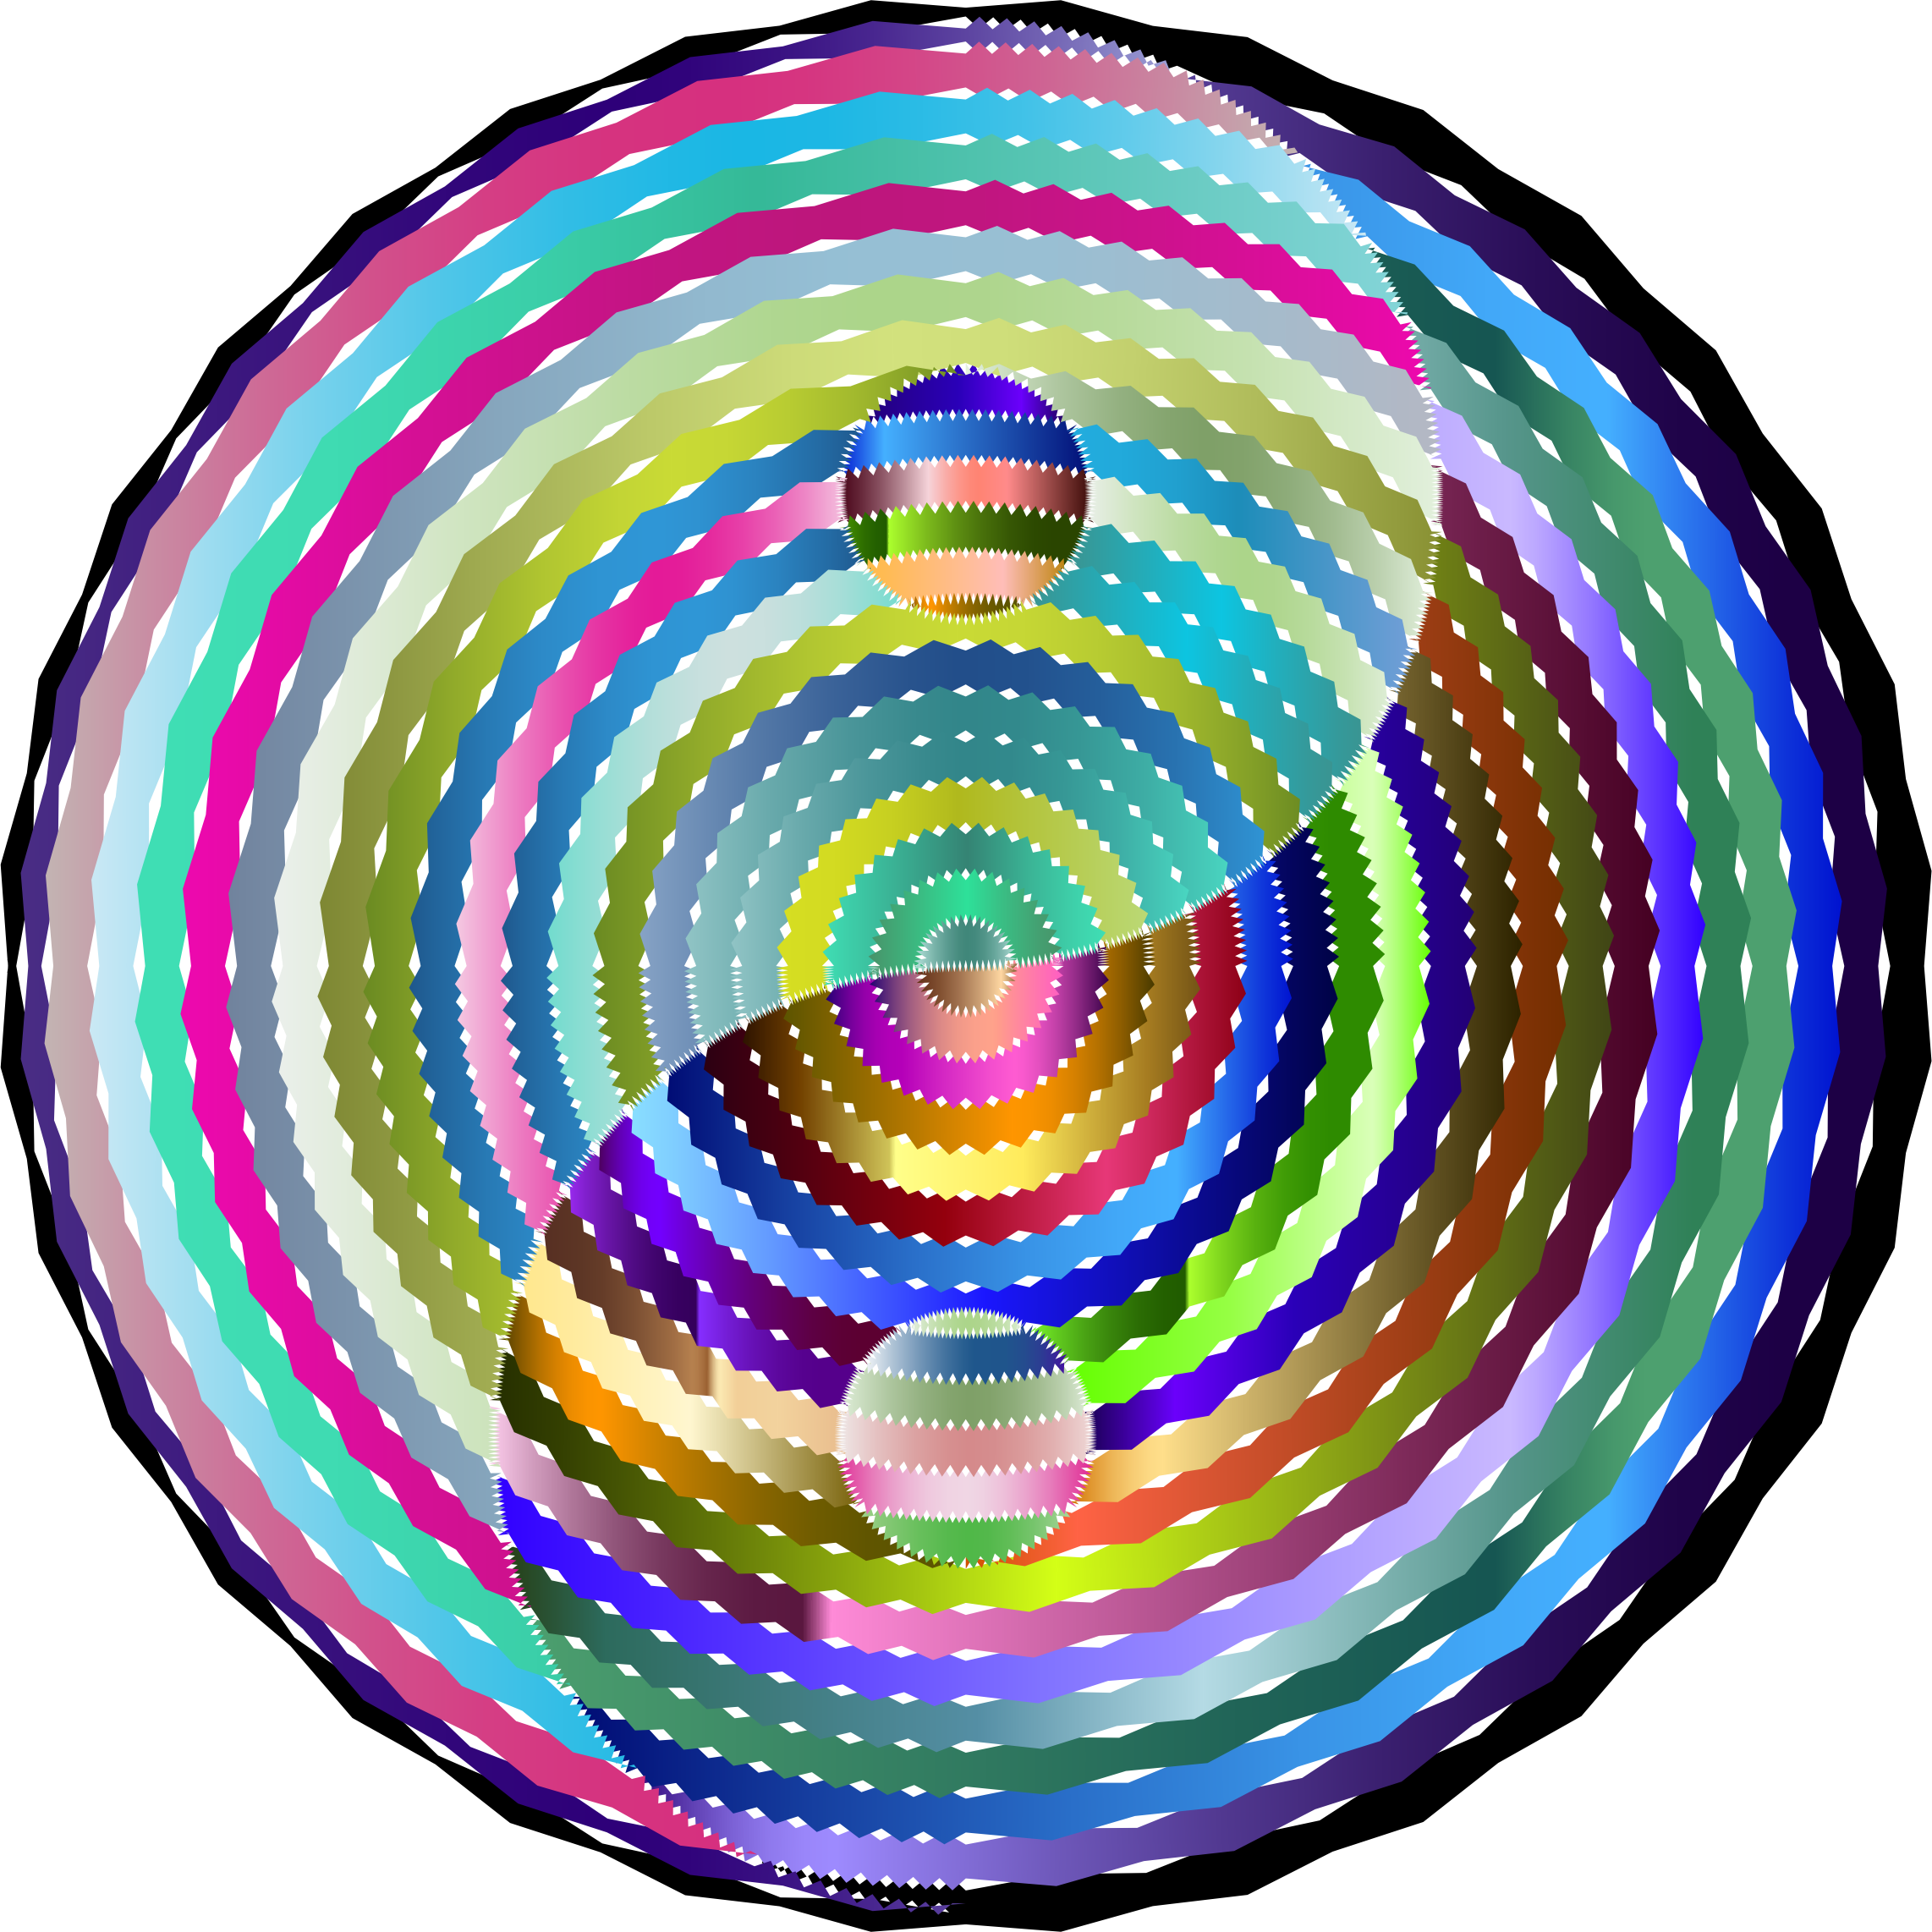 Disco Concentric Yin Yang by GDJ